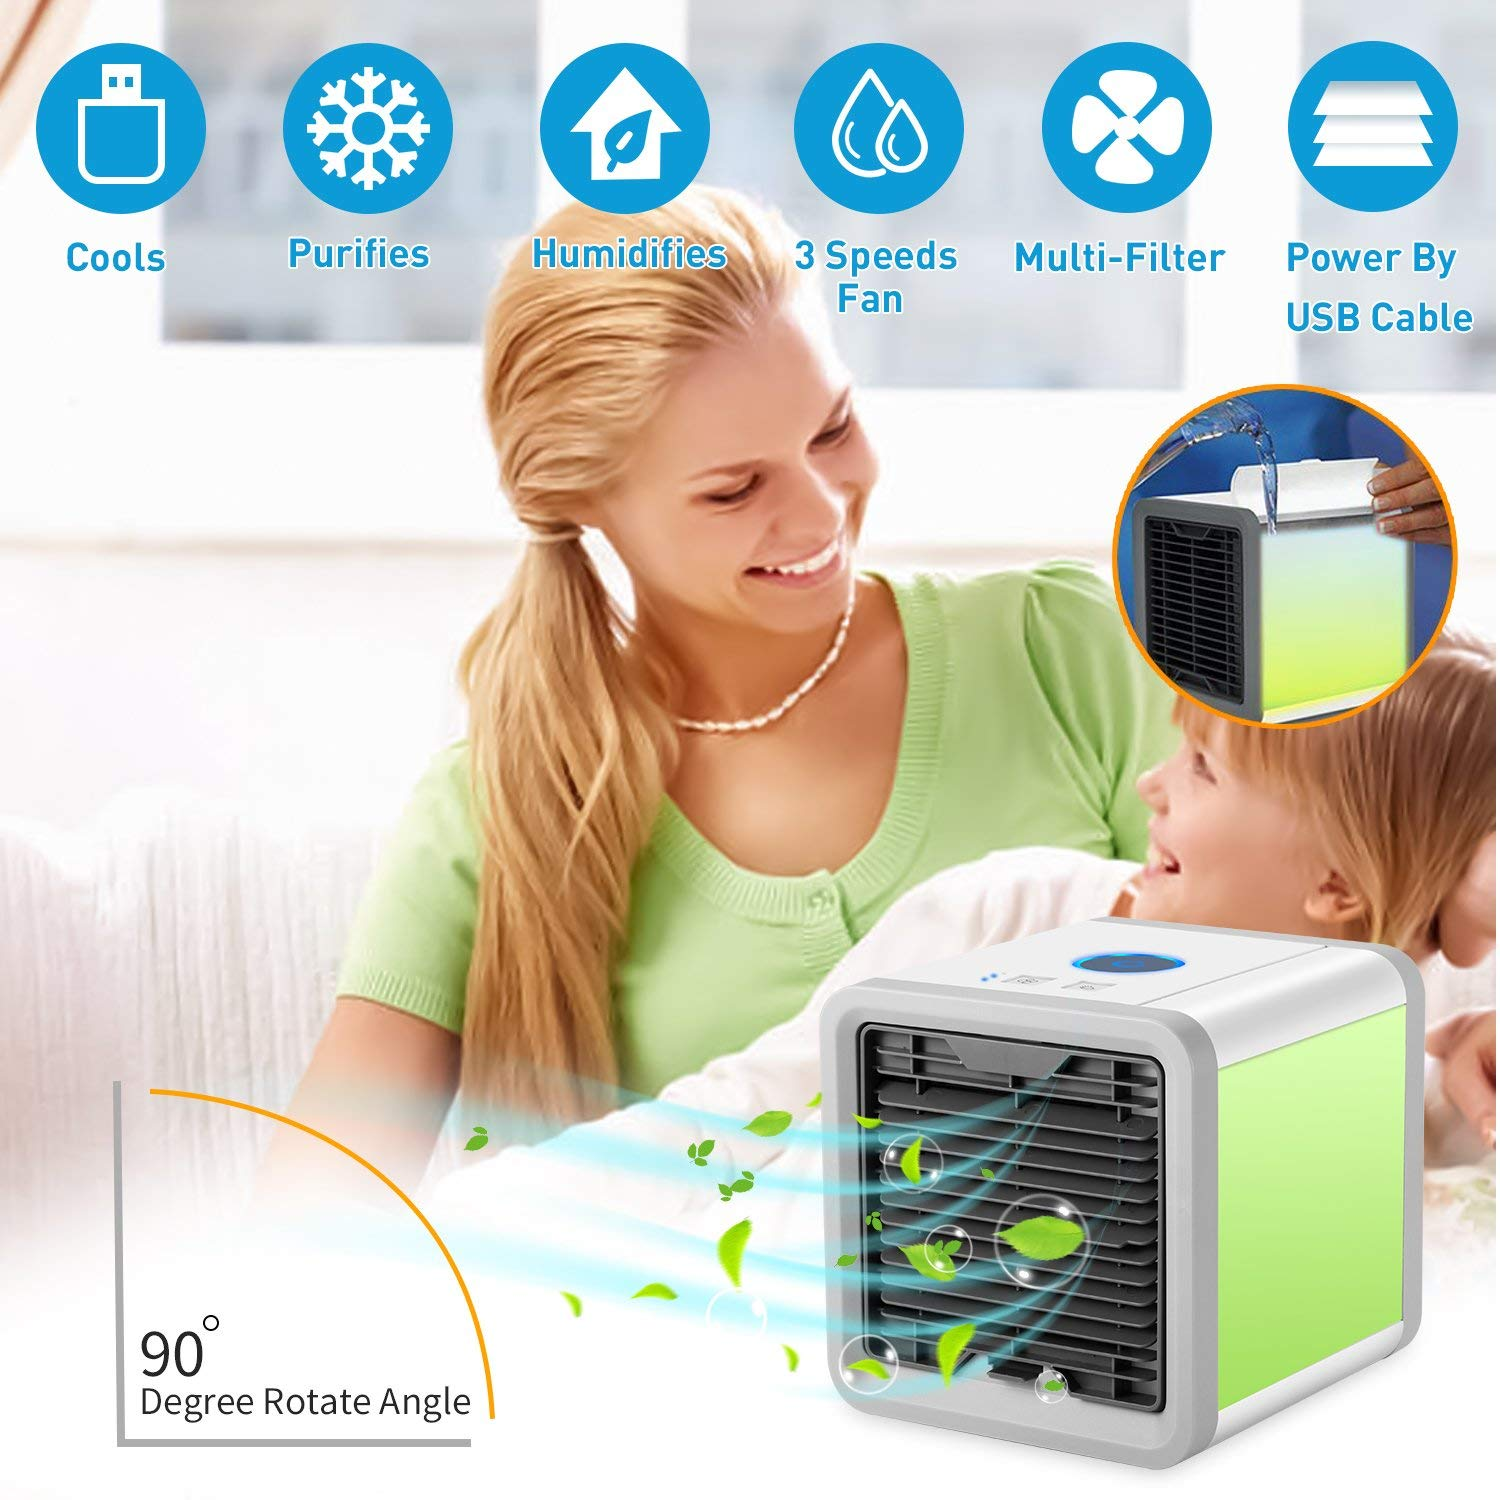 Fitfirst Portable Air Conditioner Cooler, Desk Cooling Fan, 4 in 1 Personal Space Air Cooler, Humidifier, Purifier 7 Colors Night Light, Support 3 Cooling Speeds, USB Charge Home Outdoor